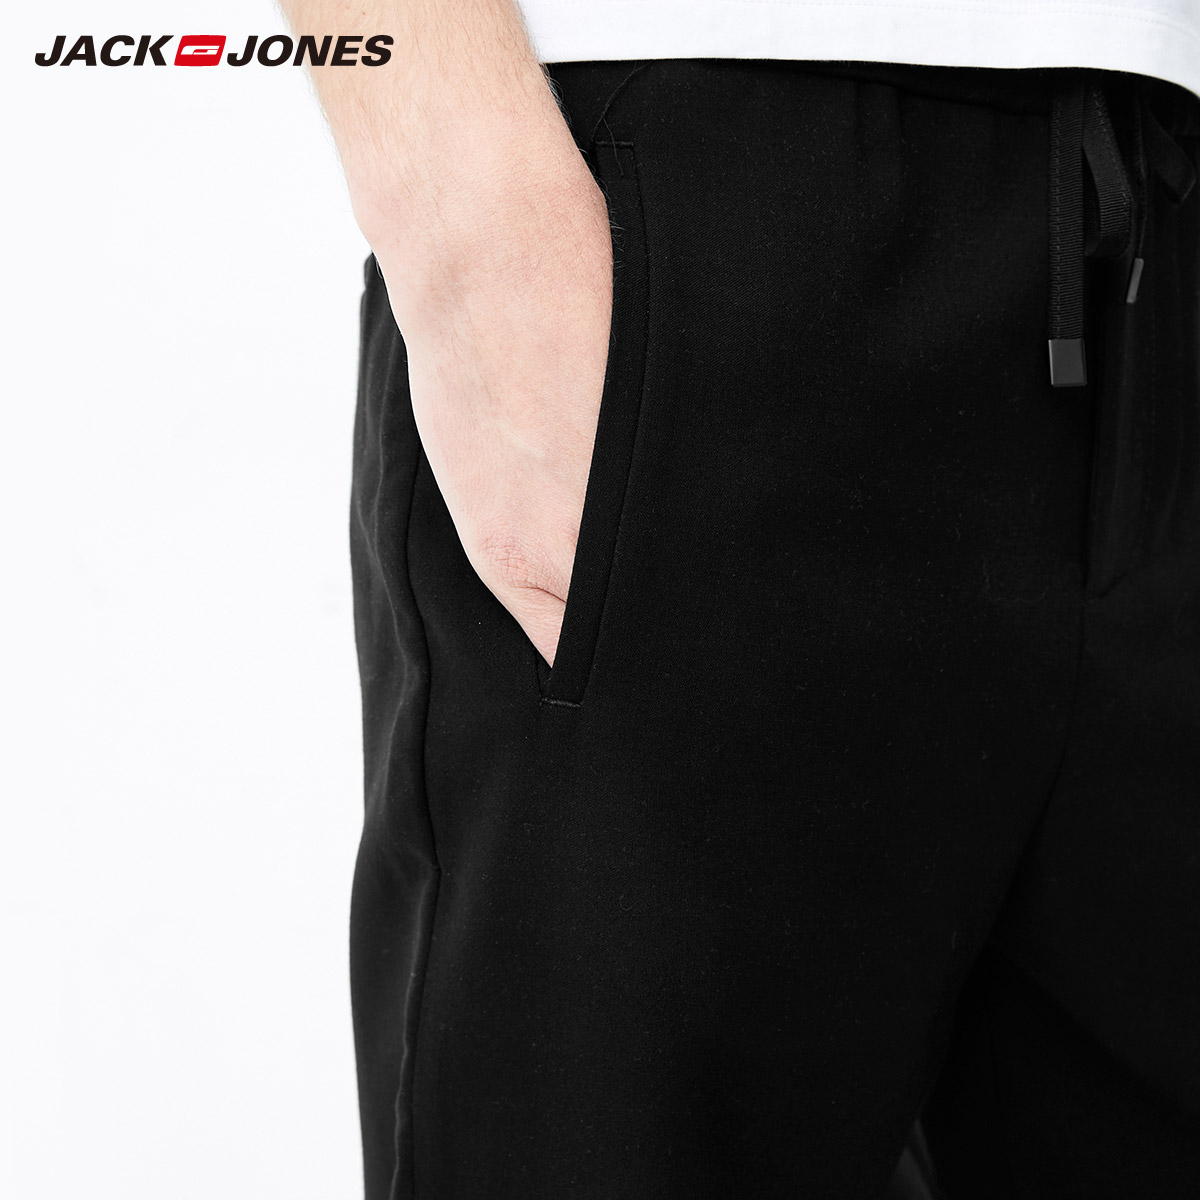 Jack Jones Spring Summer New Men Casual Solid Tapered Pants Trousers Men Joggers 218114517 in Skinny Pants from Men 39 s Clothing